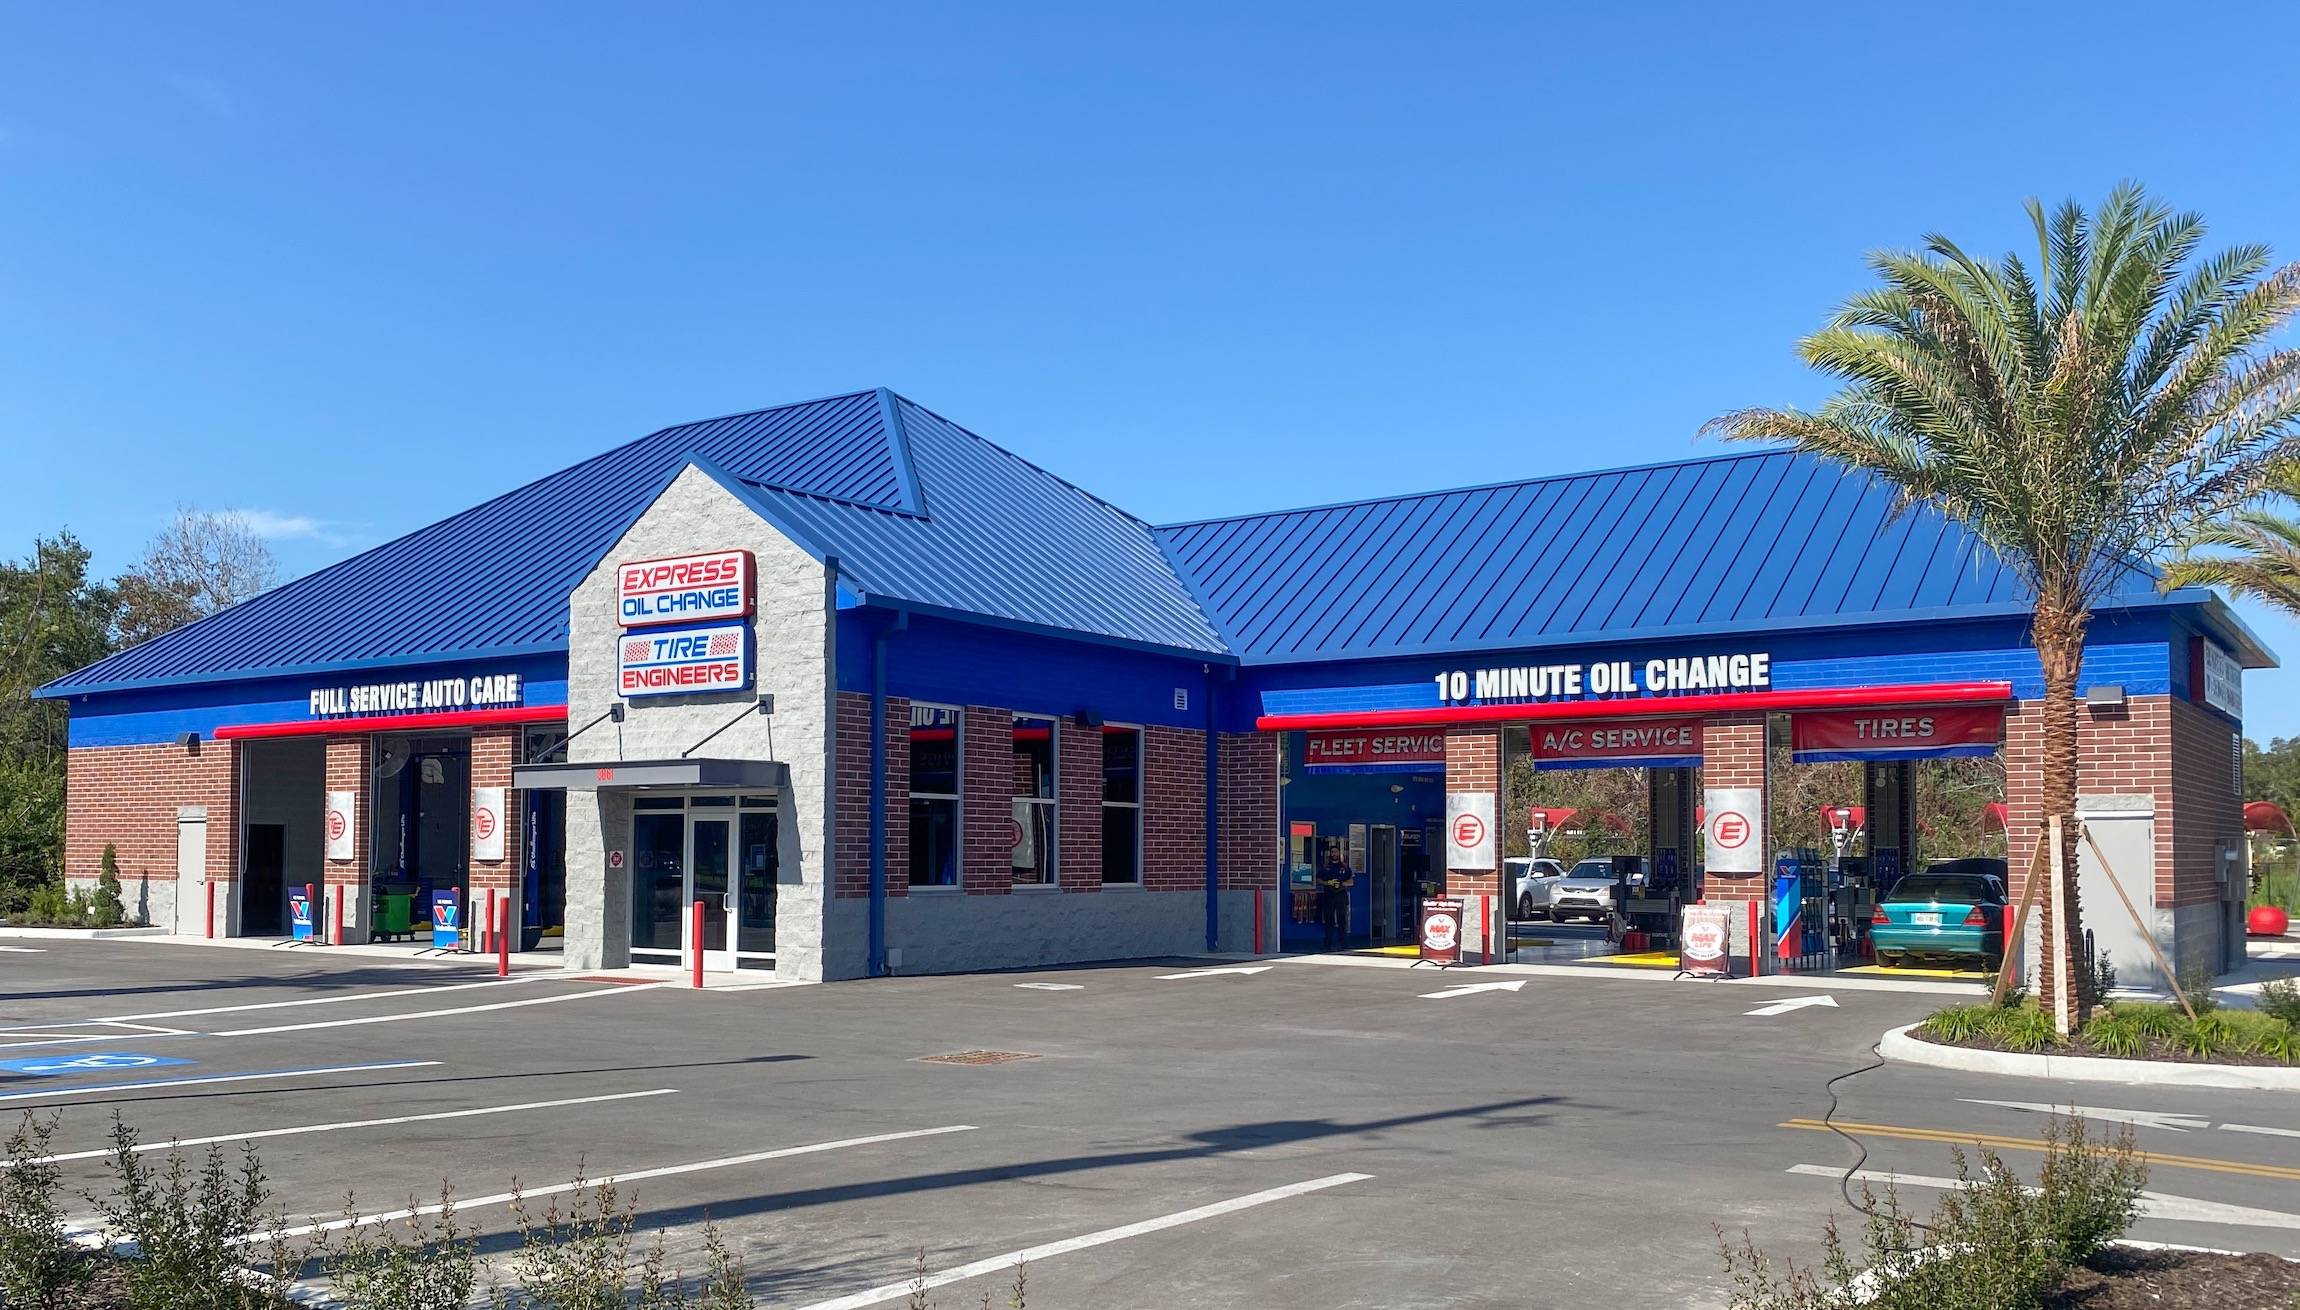 Express Oil Change & Tire Engineers at Tampa, FL - Egypt Lake store